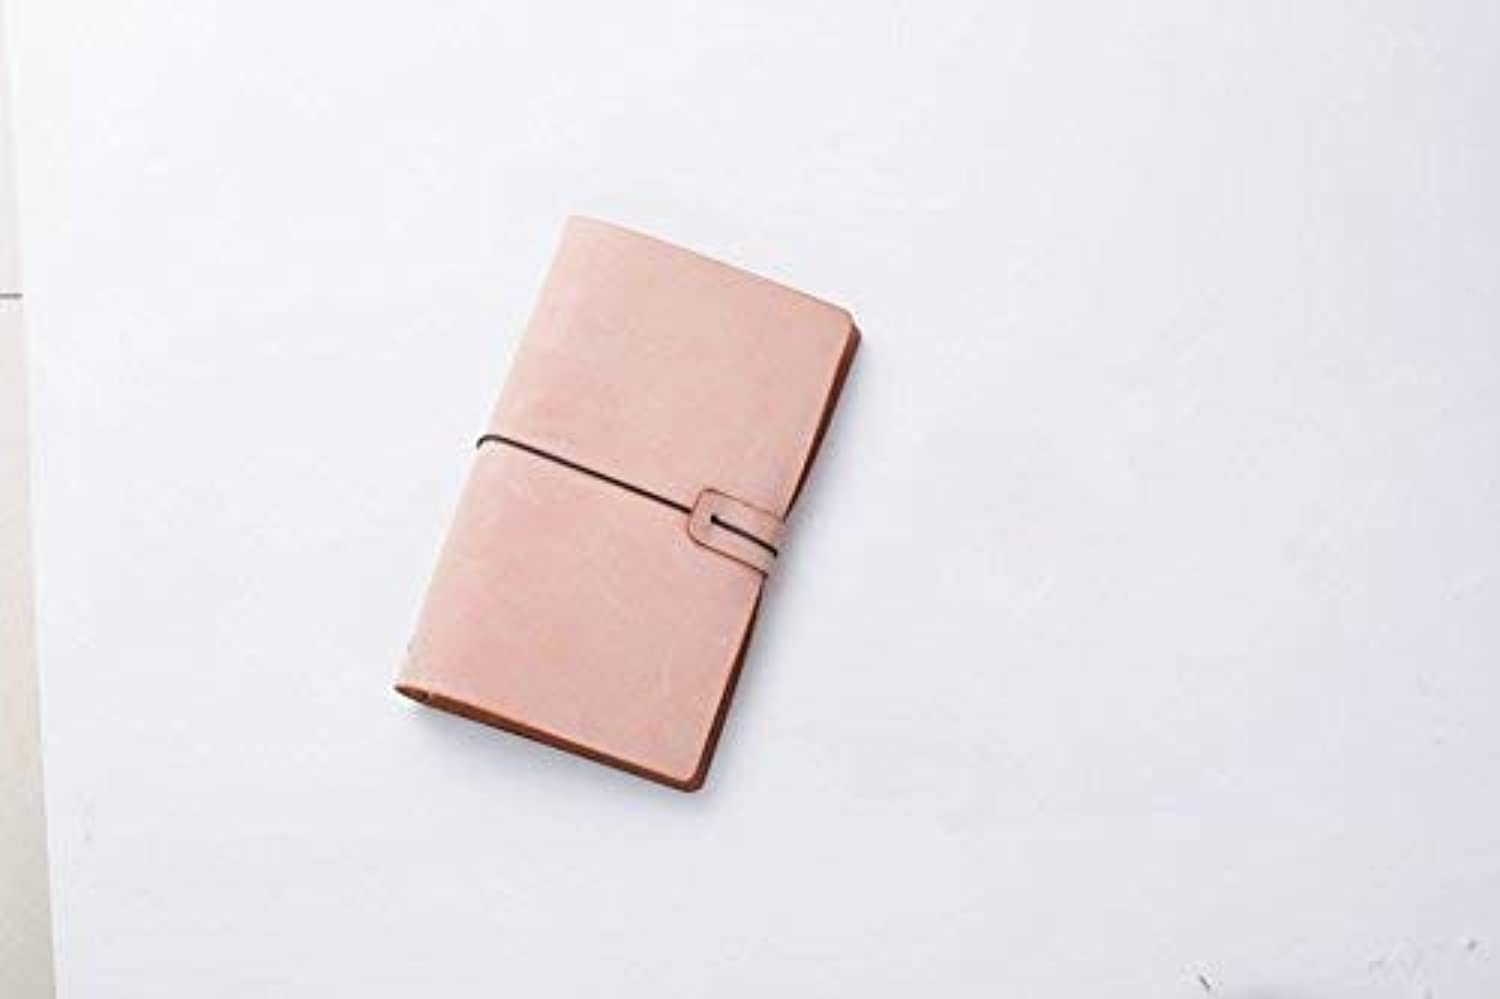 OIBHFO Home Nützliches Nützliches Nützliches 180Pages Pure Farbe Vintage Style Rindsleder Cover Notebook (Gelb) B07LCXVSCG  | Hat einen langen Ruf  52804e